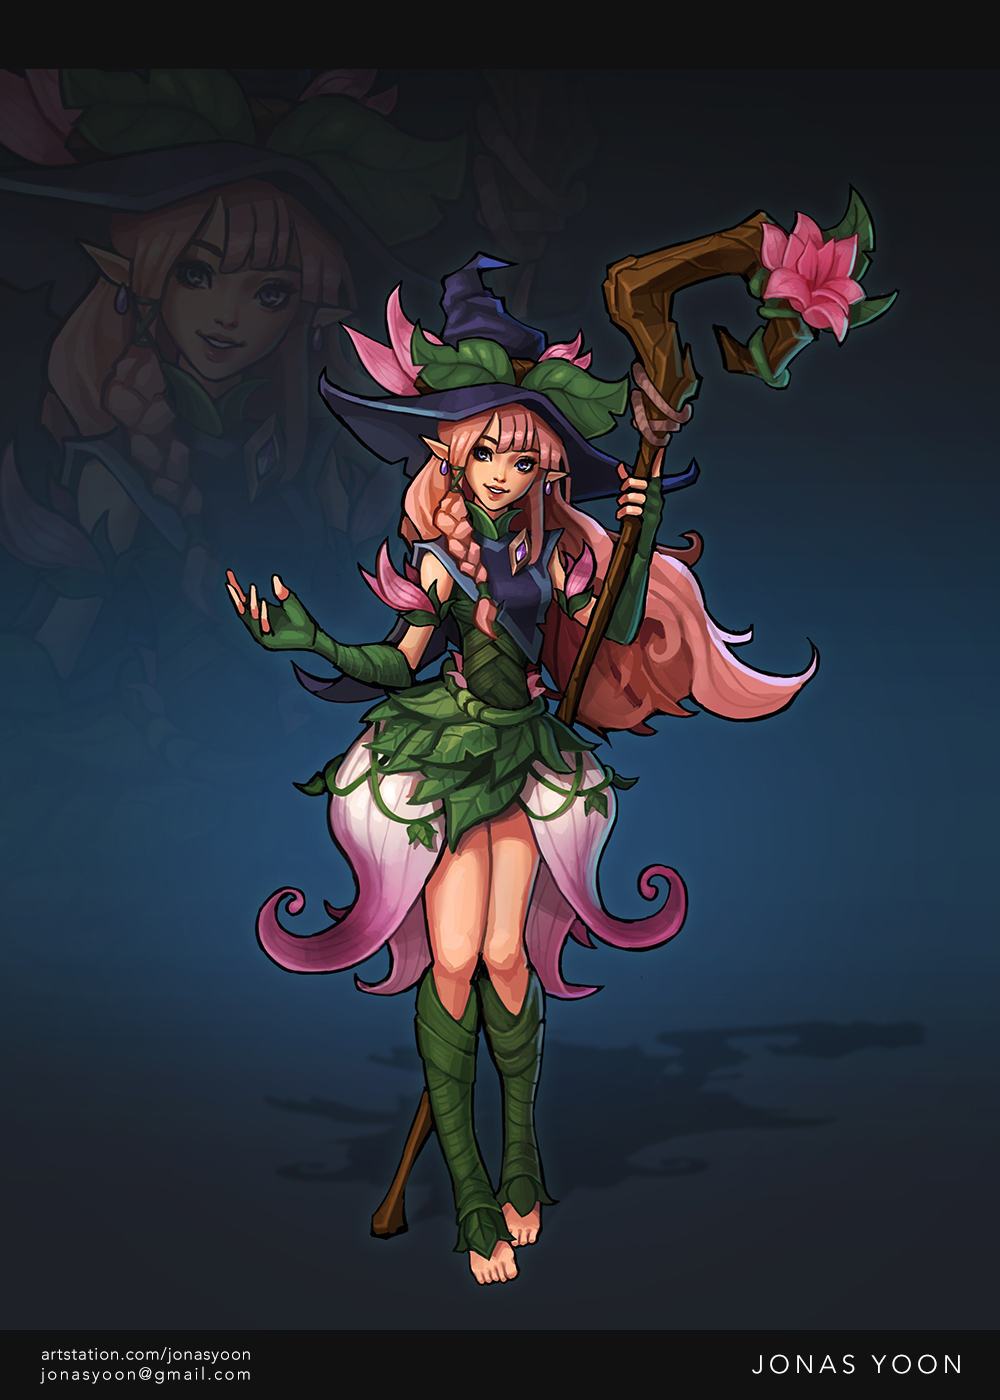 Small pink-haired girl, wearing a giant hat and holding a wooden staff.